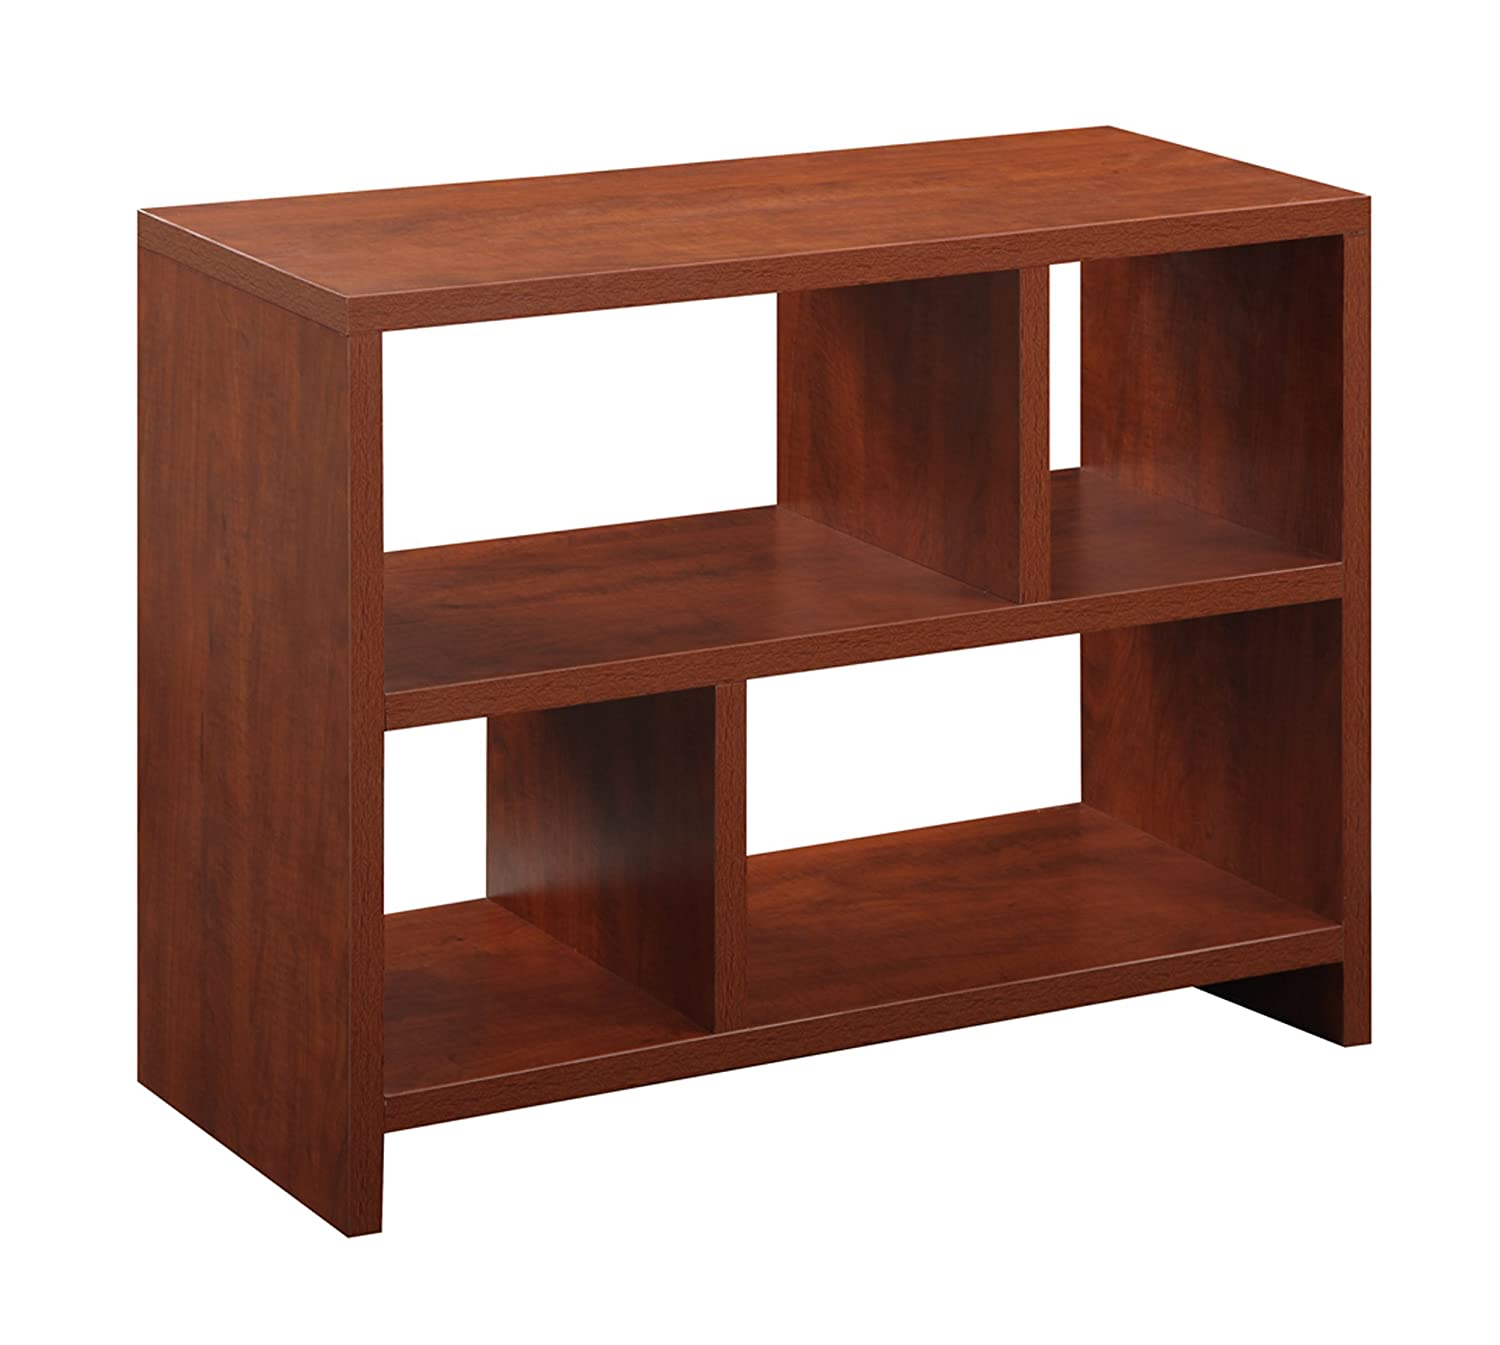 table office desk bookcases kathy supplies ireland echo product today white by shipping pure bookcase overstock free in